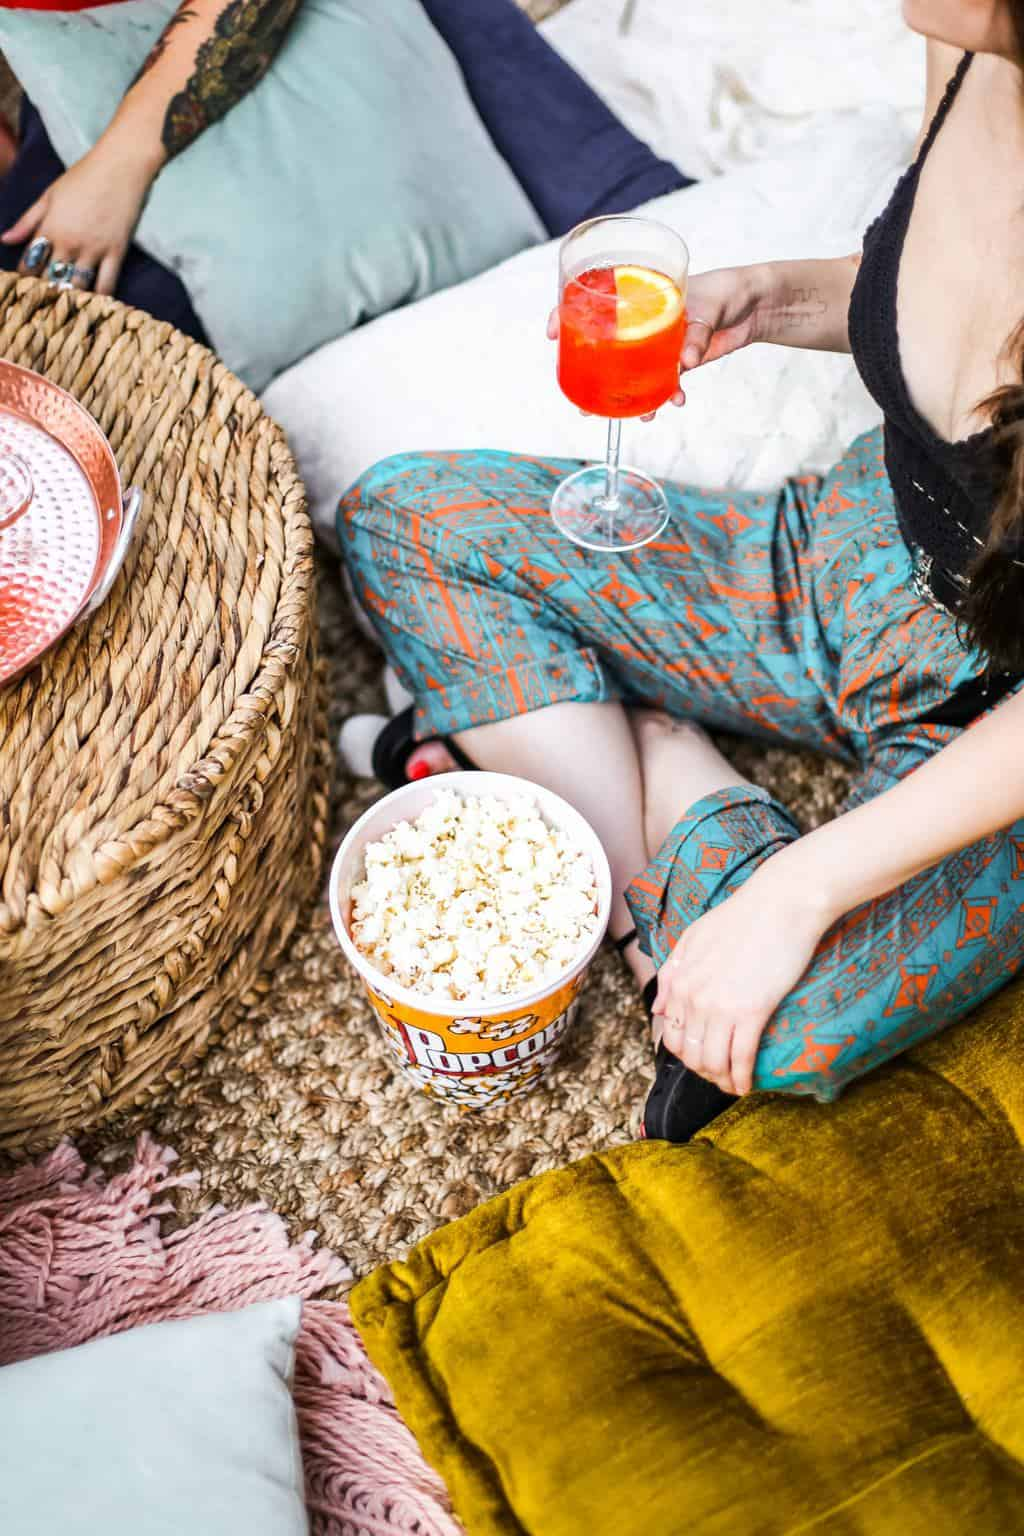 A girl with blue pants drinking an aperol spritz drink and eating a bowl of popcorn.